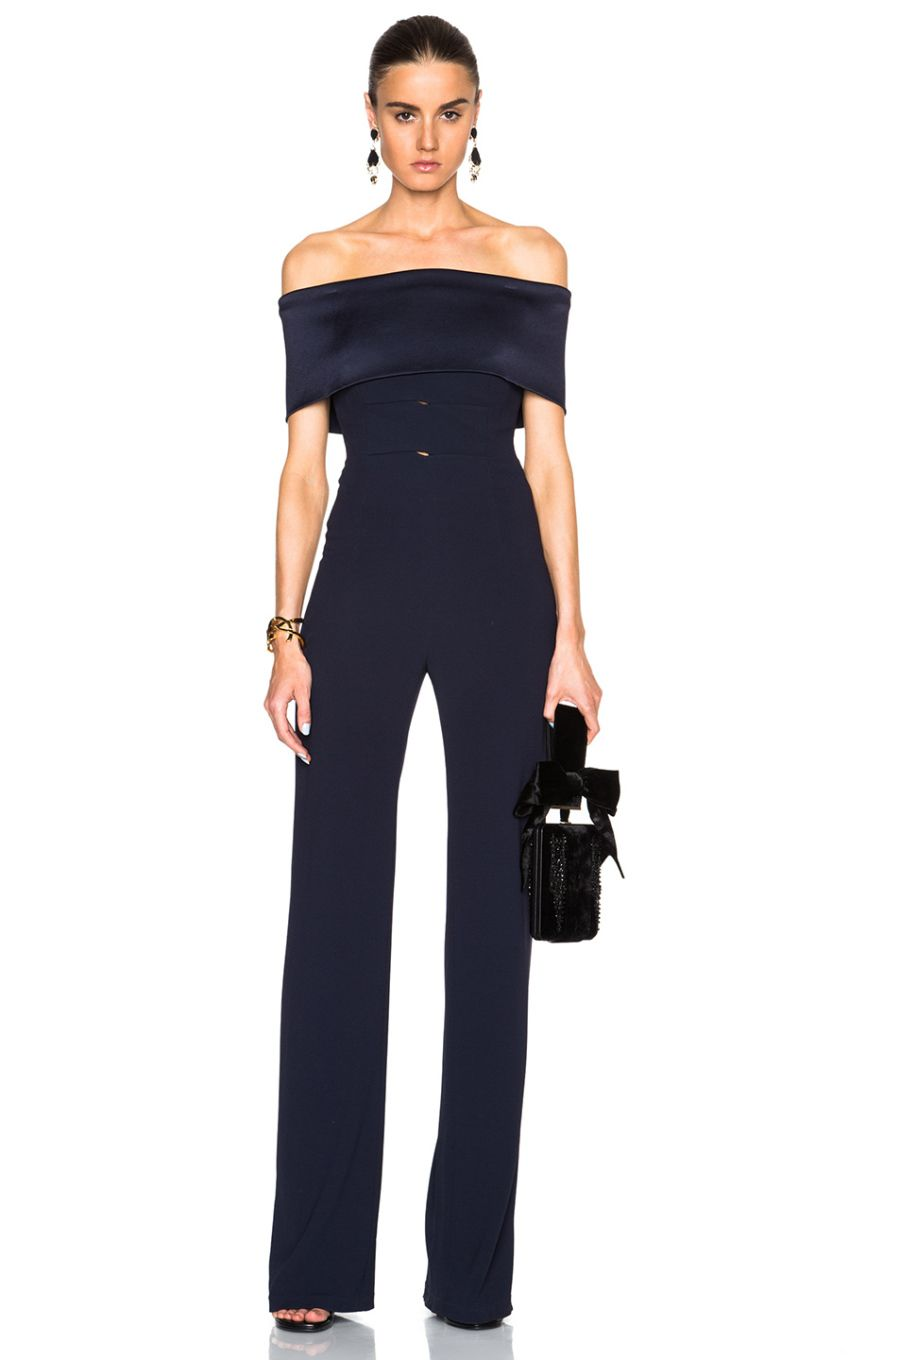 25 Jumpsuits You Could Totally Get Away With Wearing To A Wedding